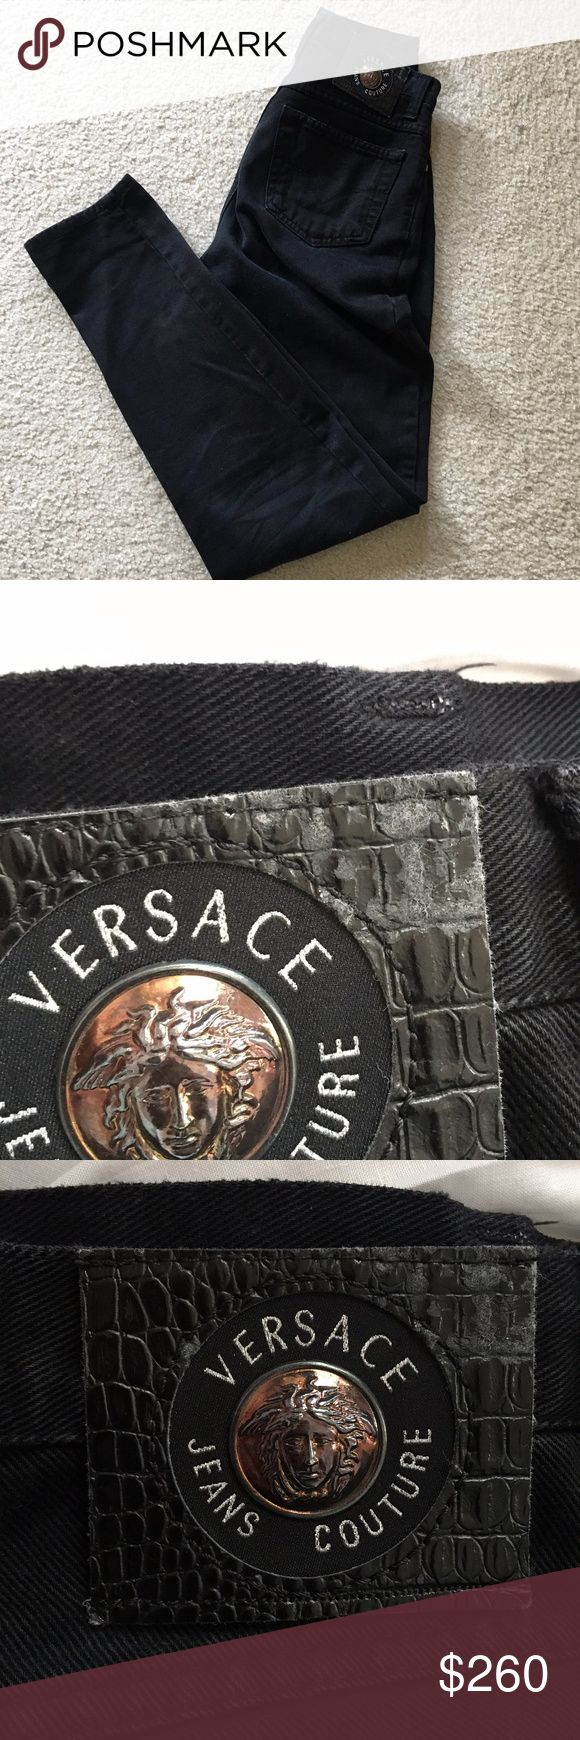 Selling this VINTAGE VERSACE Couture Black High Waisted Jeans on Poshmark! My username is: purelycari. #shopmycloset #poshmark #fashion #shopping #style #forsale #Versace Jeans Collection #Denim